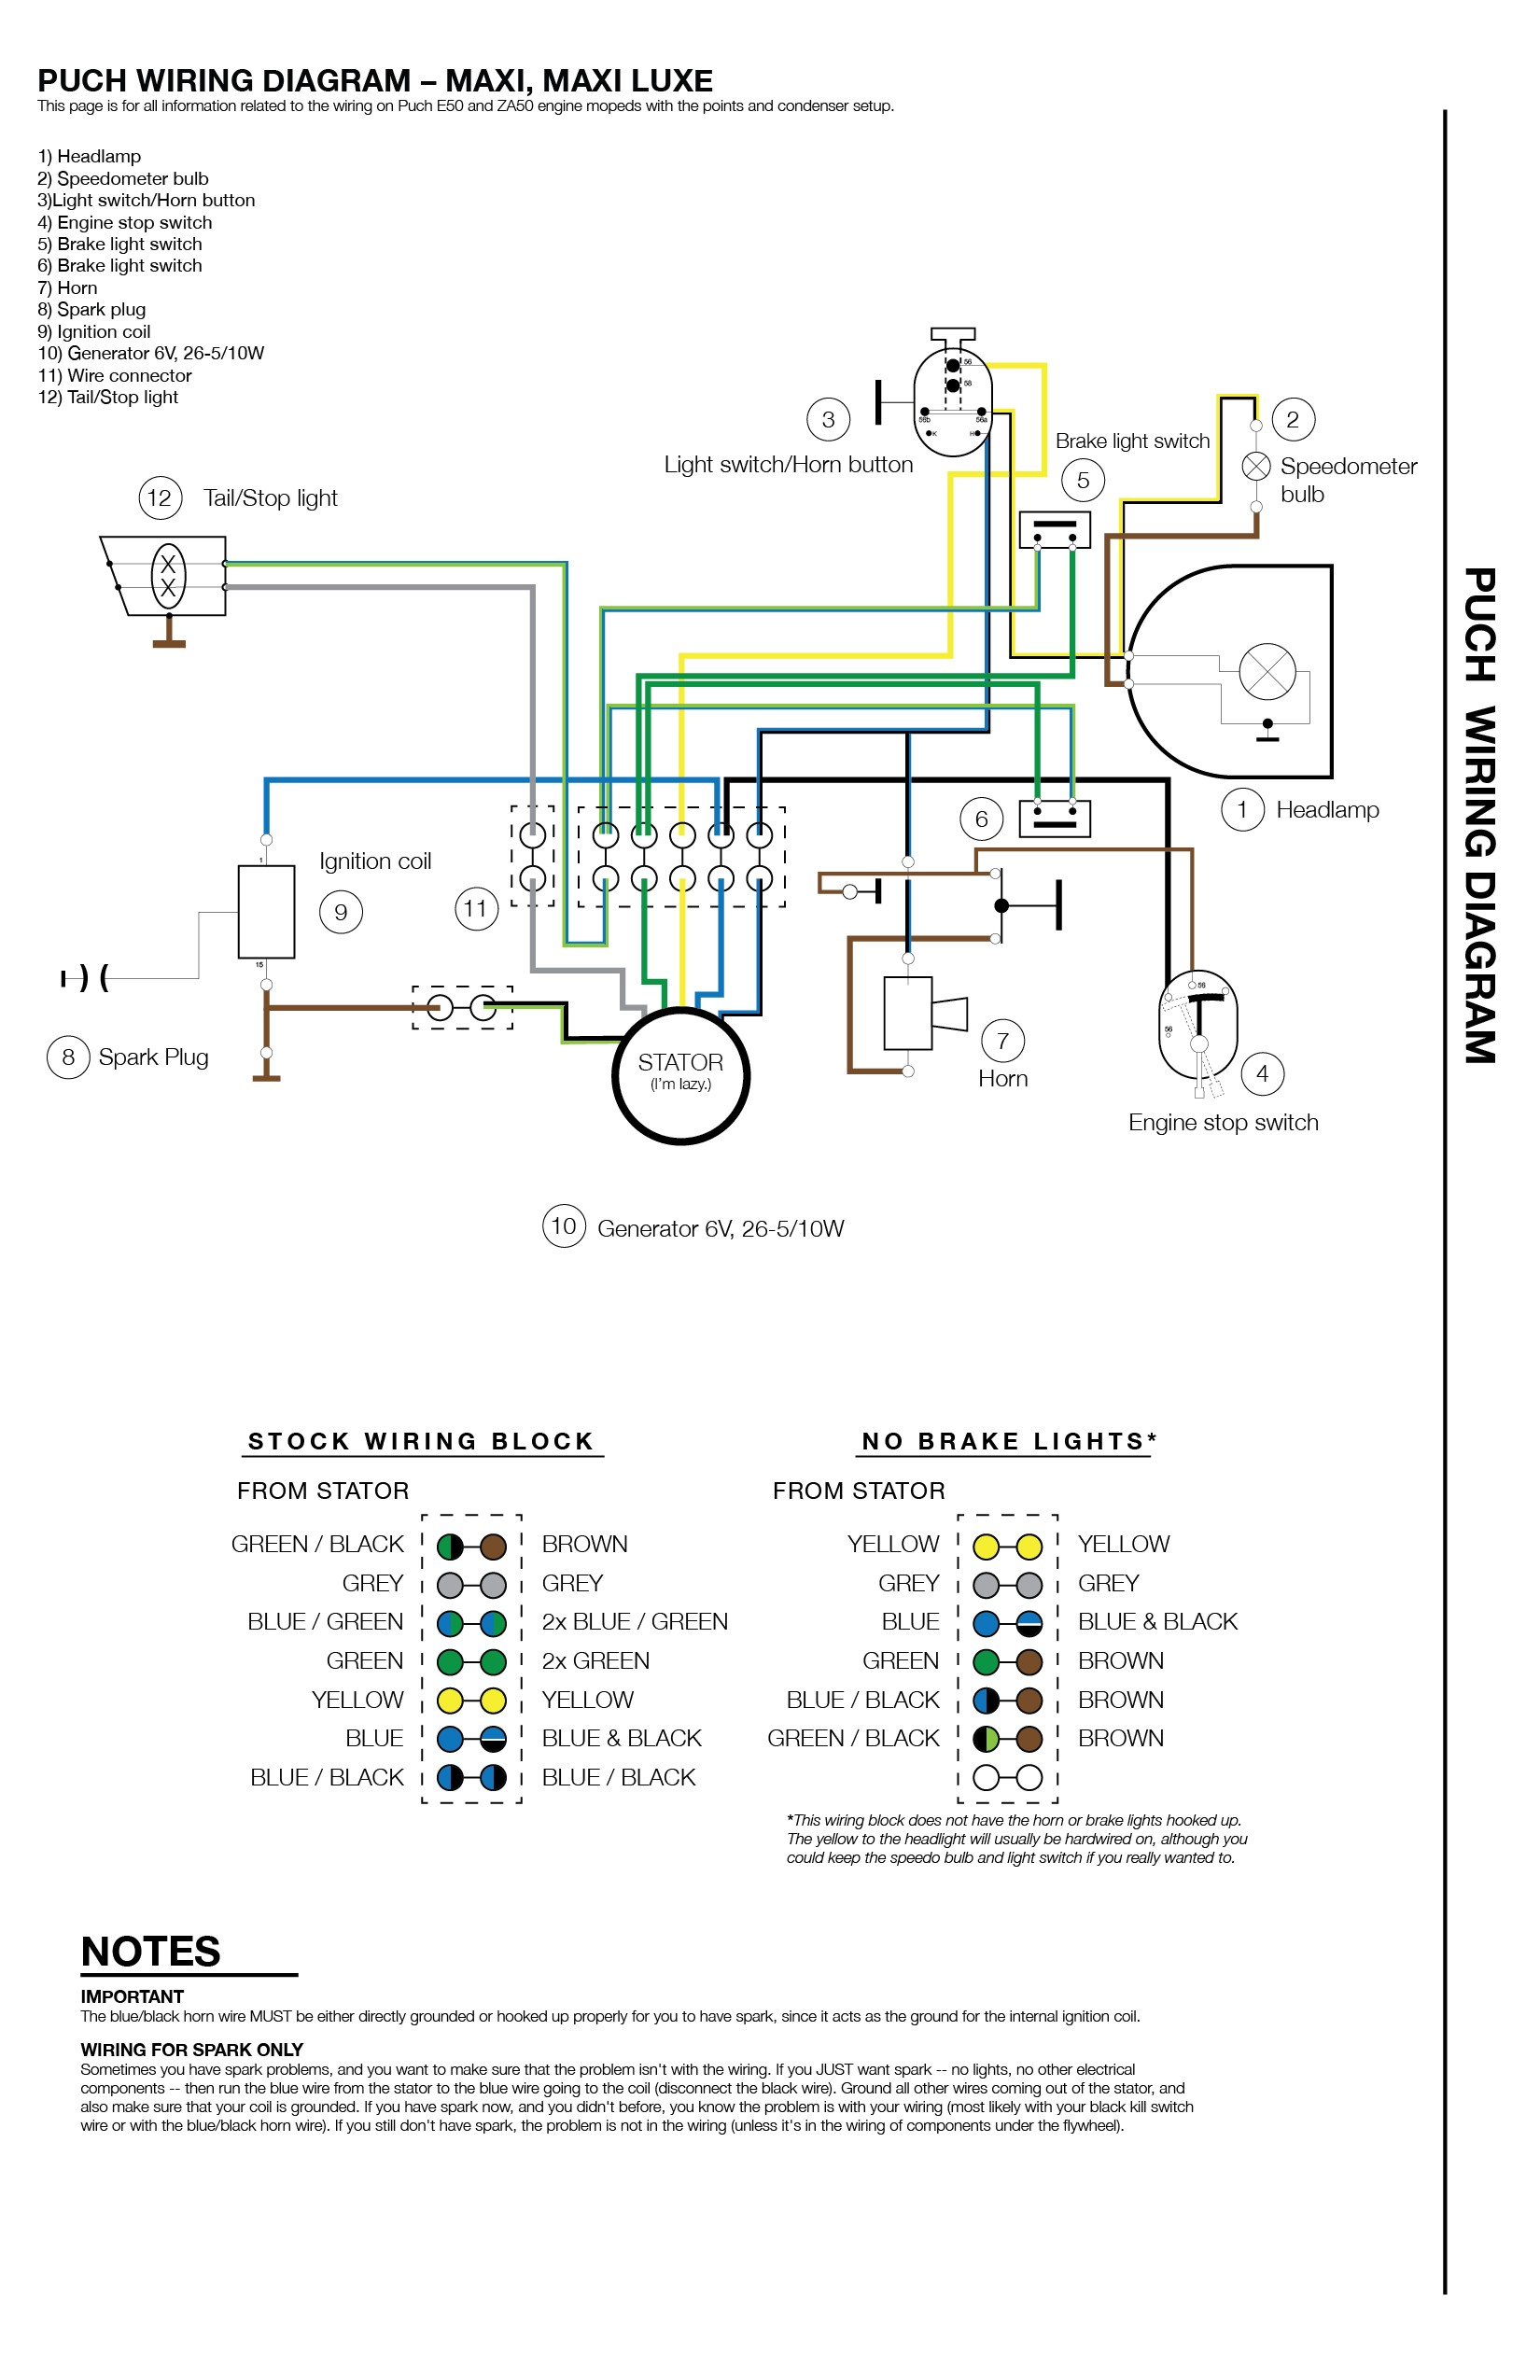 rj45 wiring diagram wikipedia electrical work wiring diagram u2022 rh wiringdiagramshop today Cat 5 Plug Wiring Diagram Cat 5 Plug Wiring Diagram